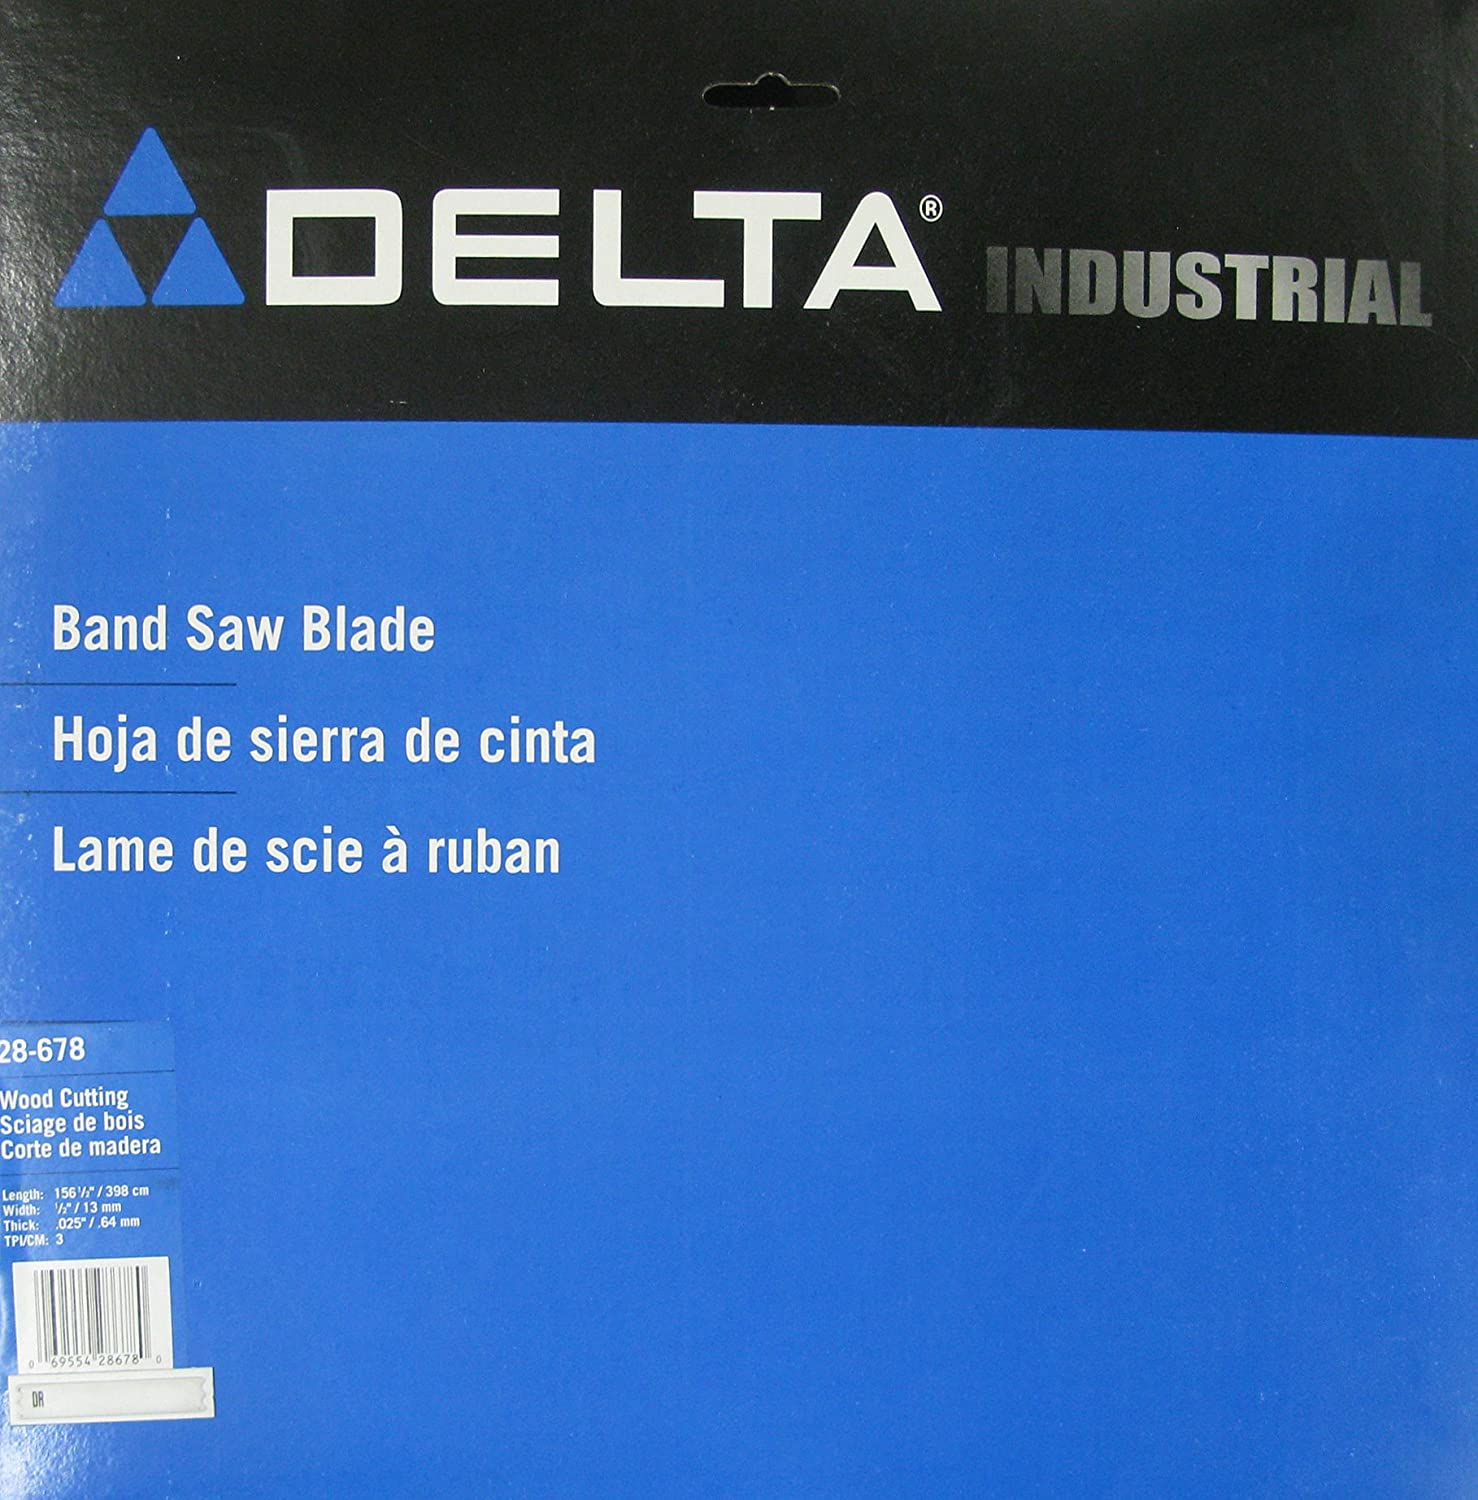 Delta 28-678 20-Inch Band Saw Blade 1/2-Inch by 156-1/2-Inch 3 TPI